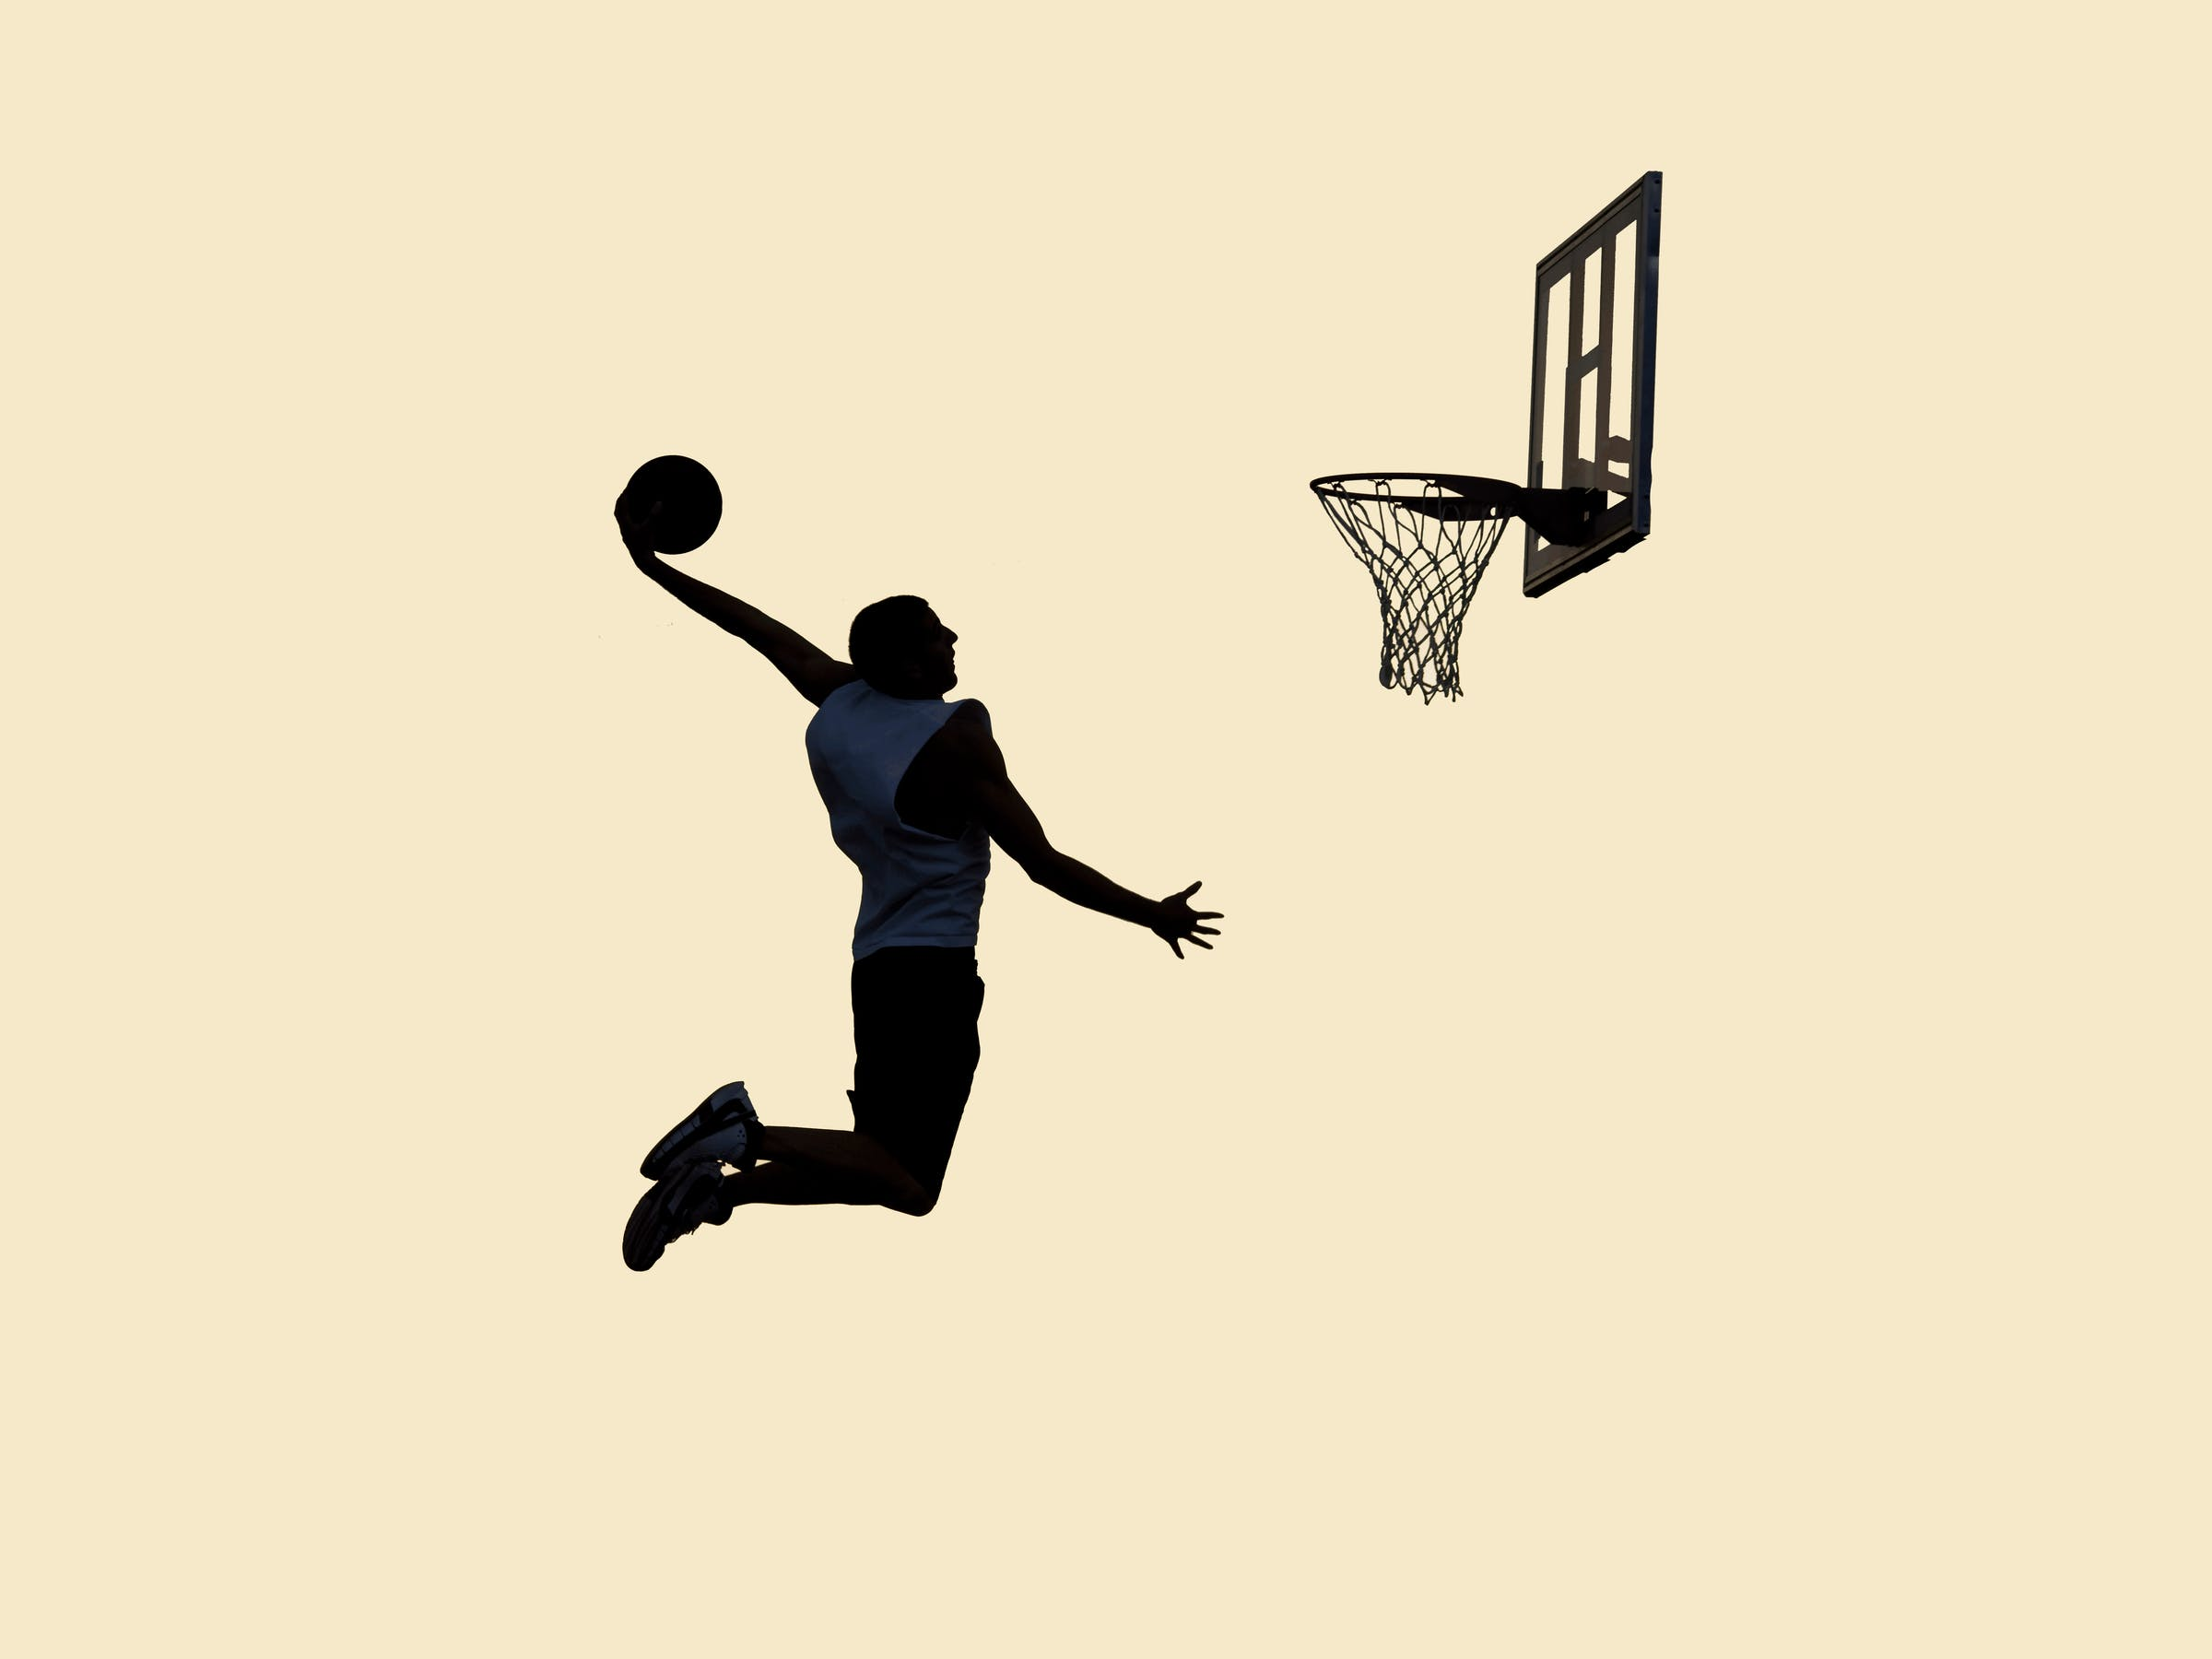 Dunking silhouette